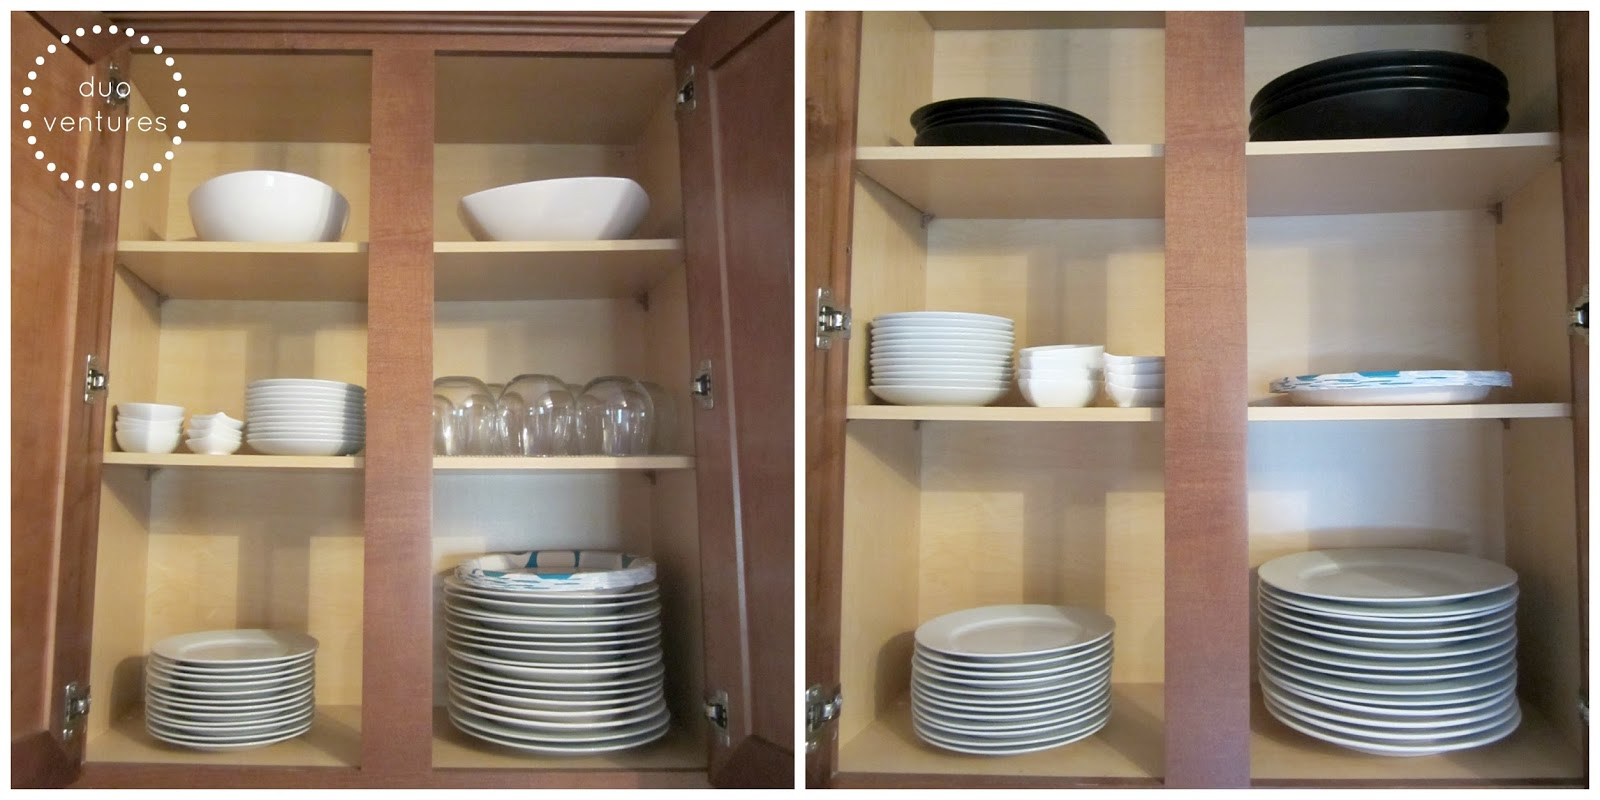 kitchen cabinet stores three piece sets duo ventures: organizing: the